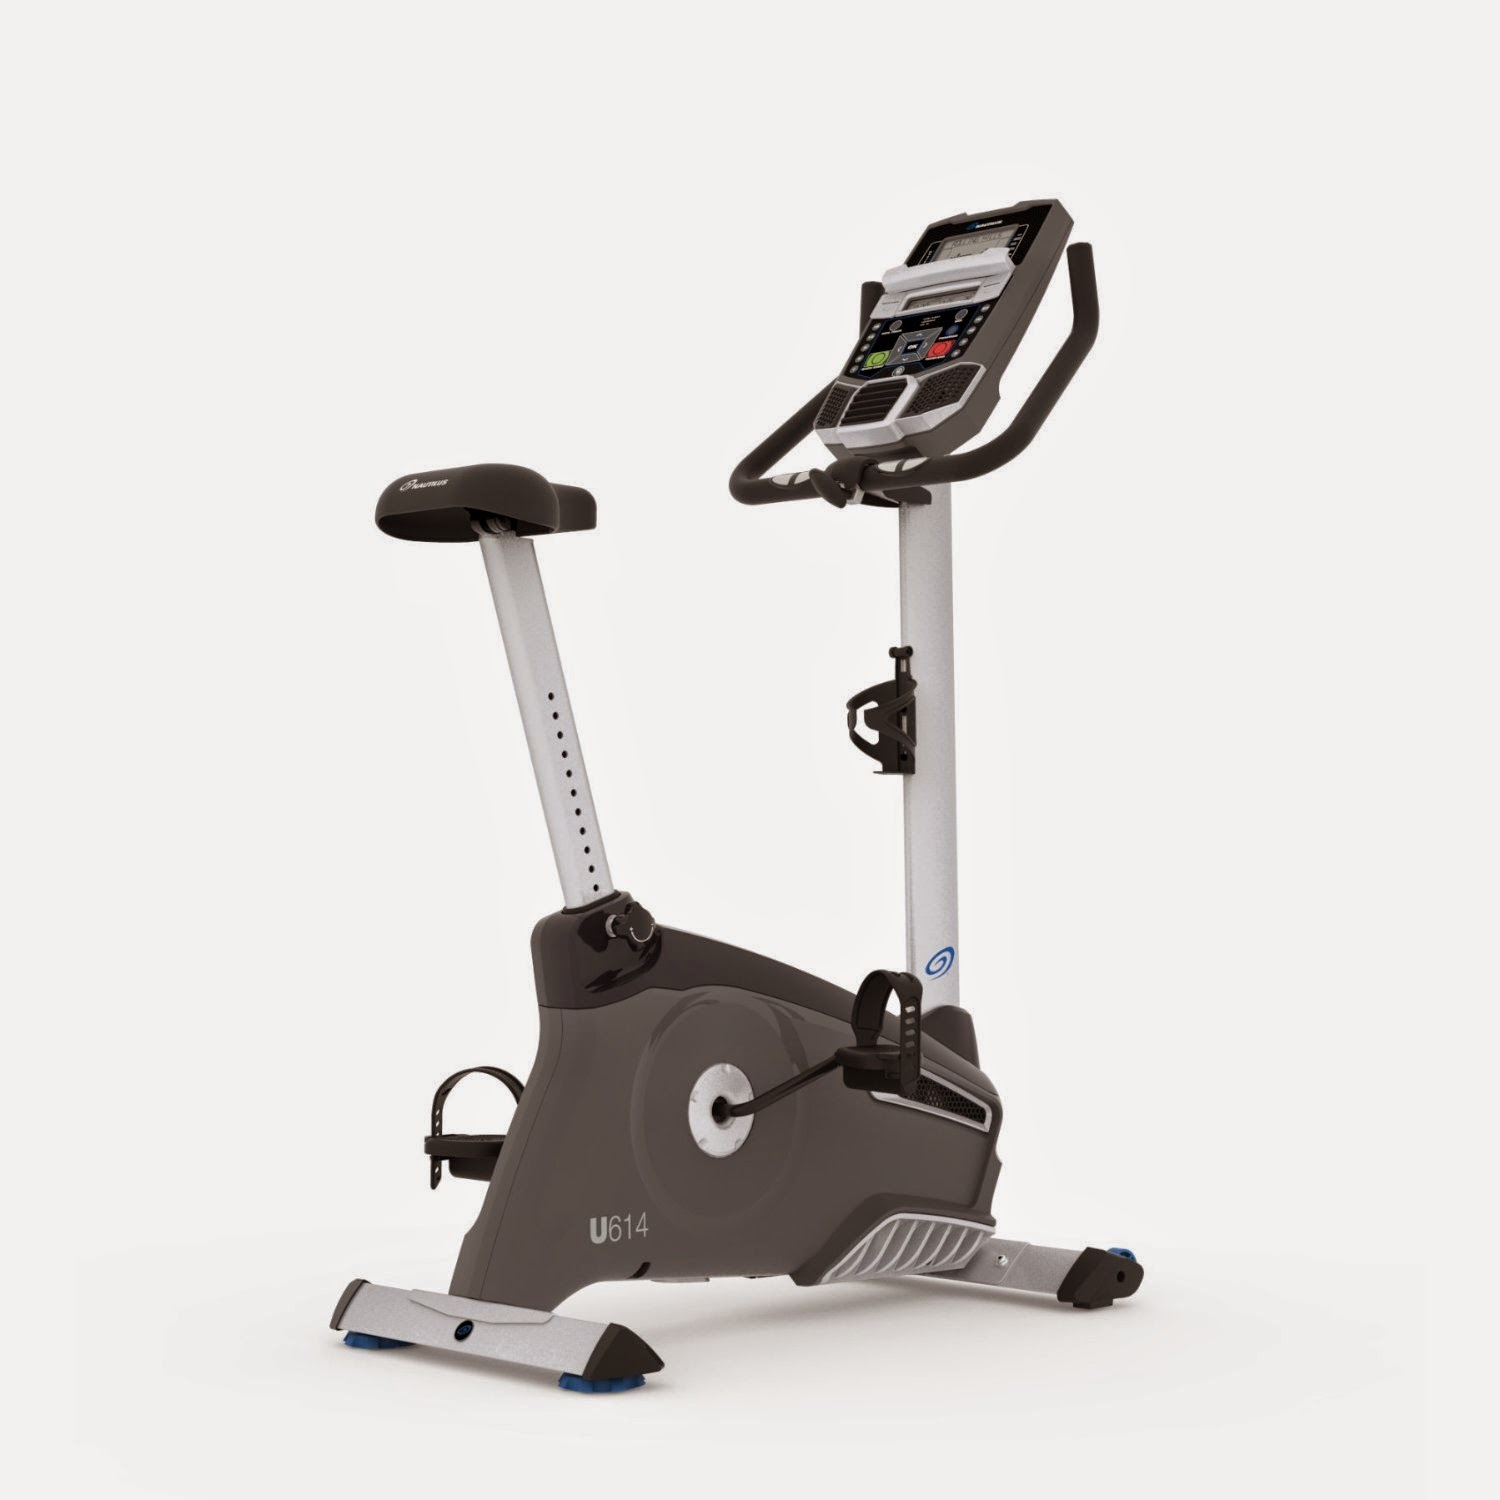 Nautilus U614 Upright Exercise Bike, picture, image, review features & specifications, compare with Nautilus U616